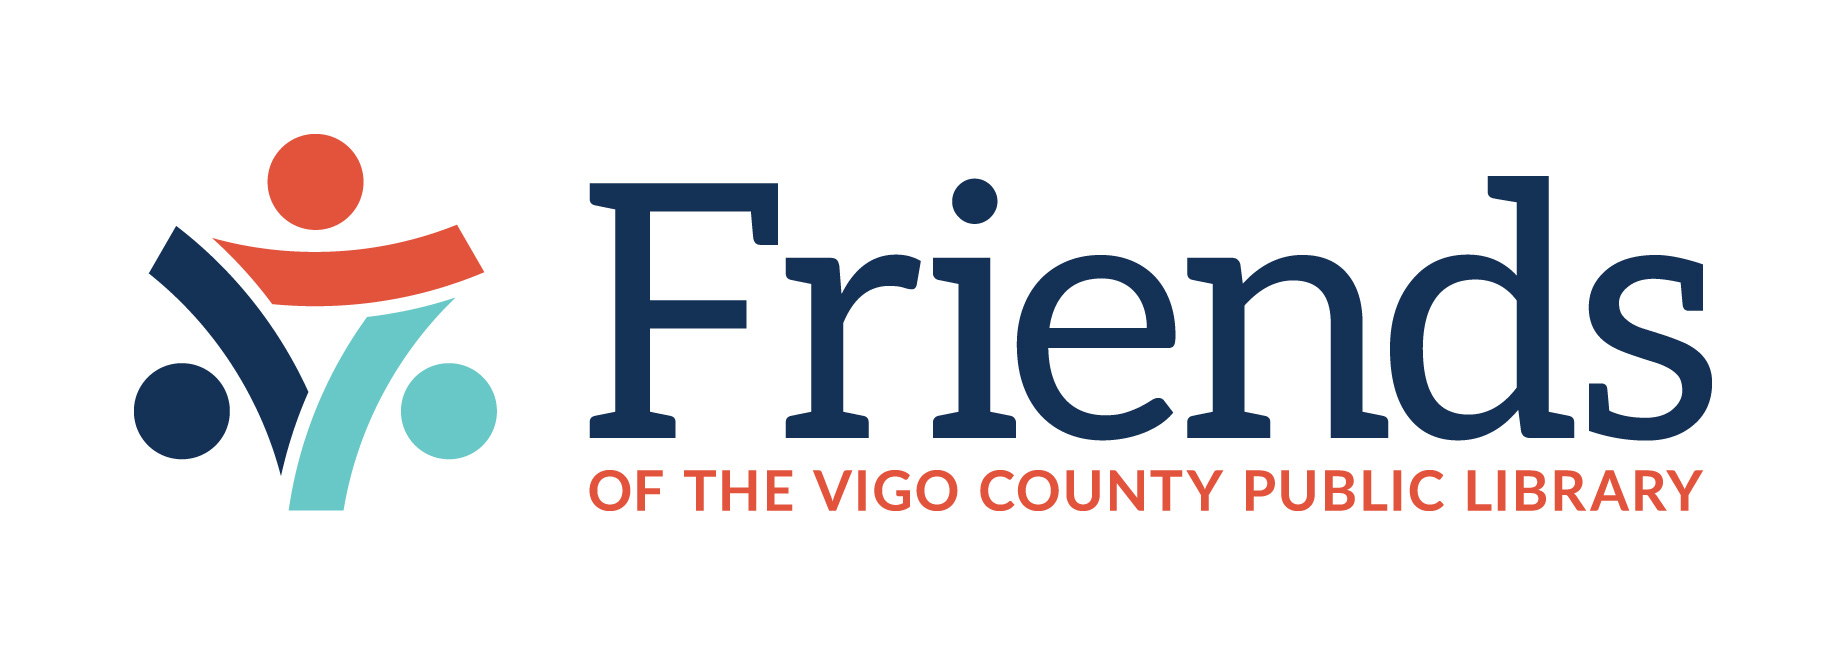 Friends of the Vigo County Public Library